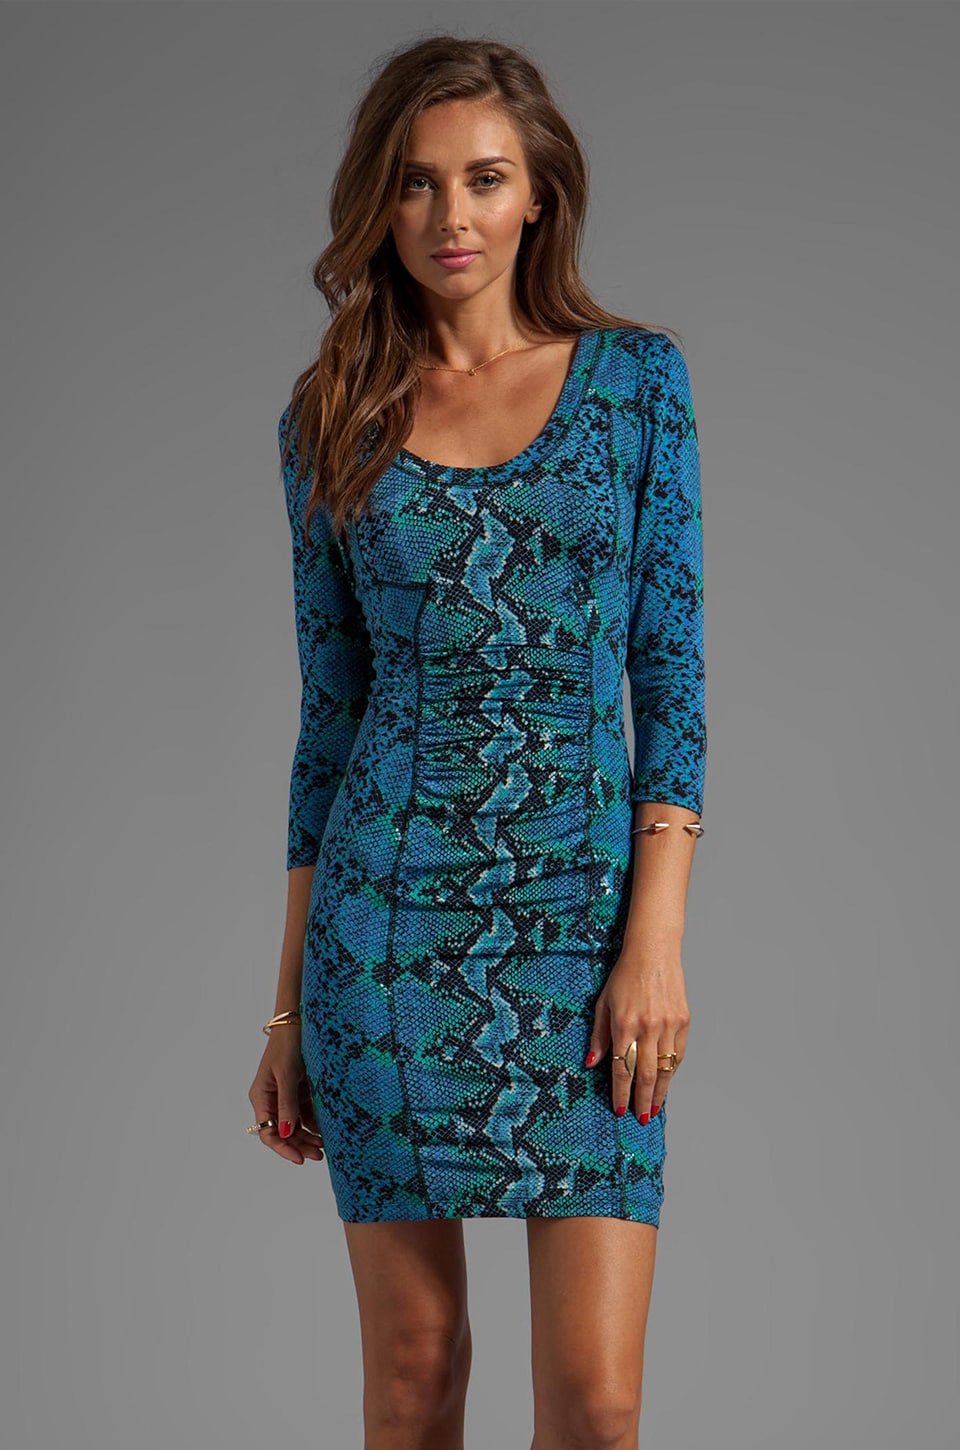 Tracy Reese Printed Jersey Matte/Slink Sheath Dress in Turkish Blue Python